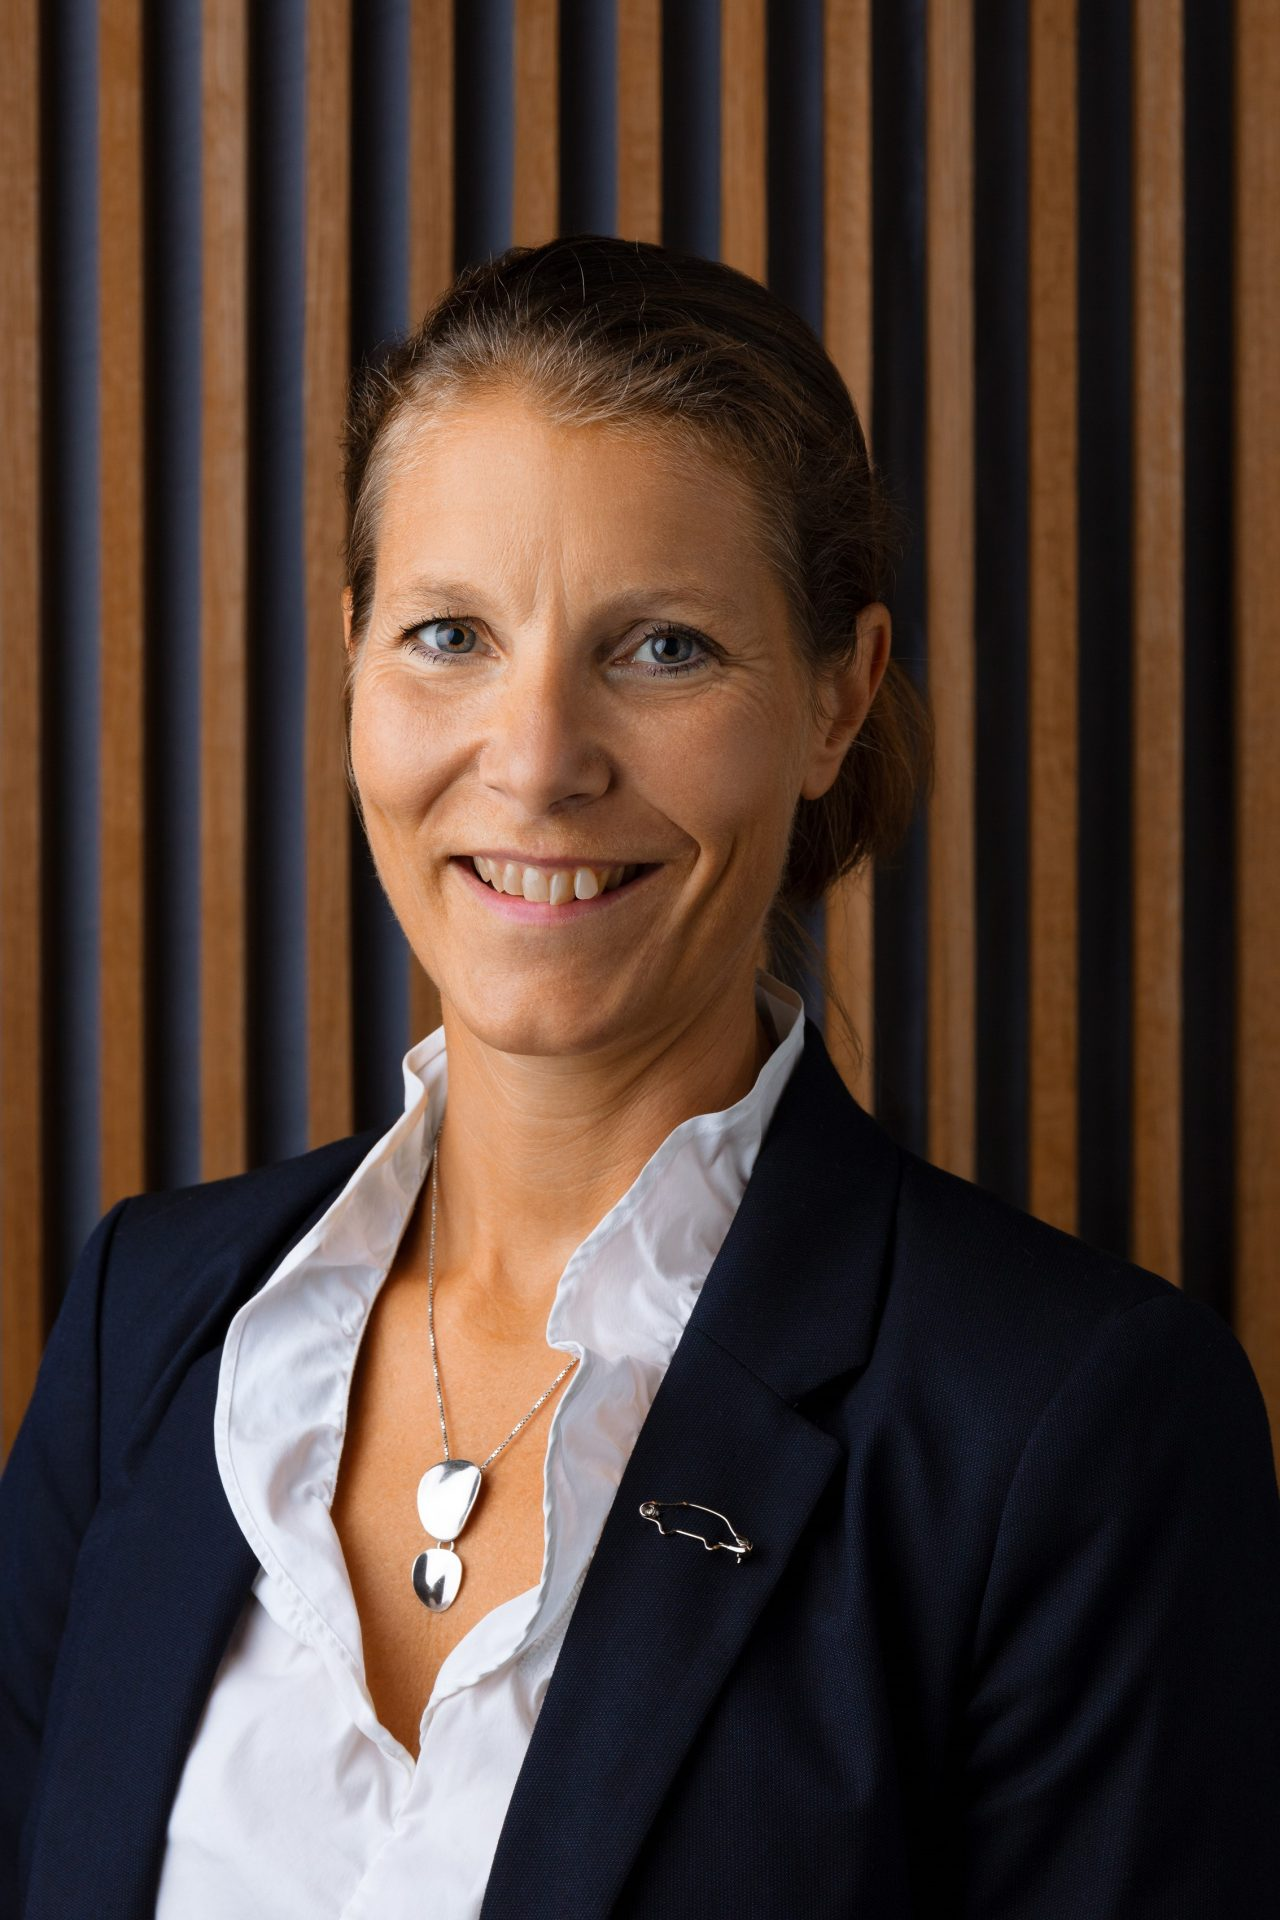 Malin Ekholm, head of the Volvo Cars Safety Centre